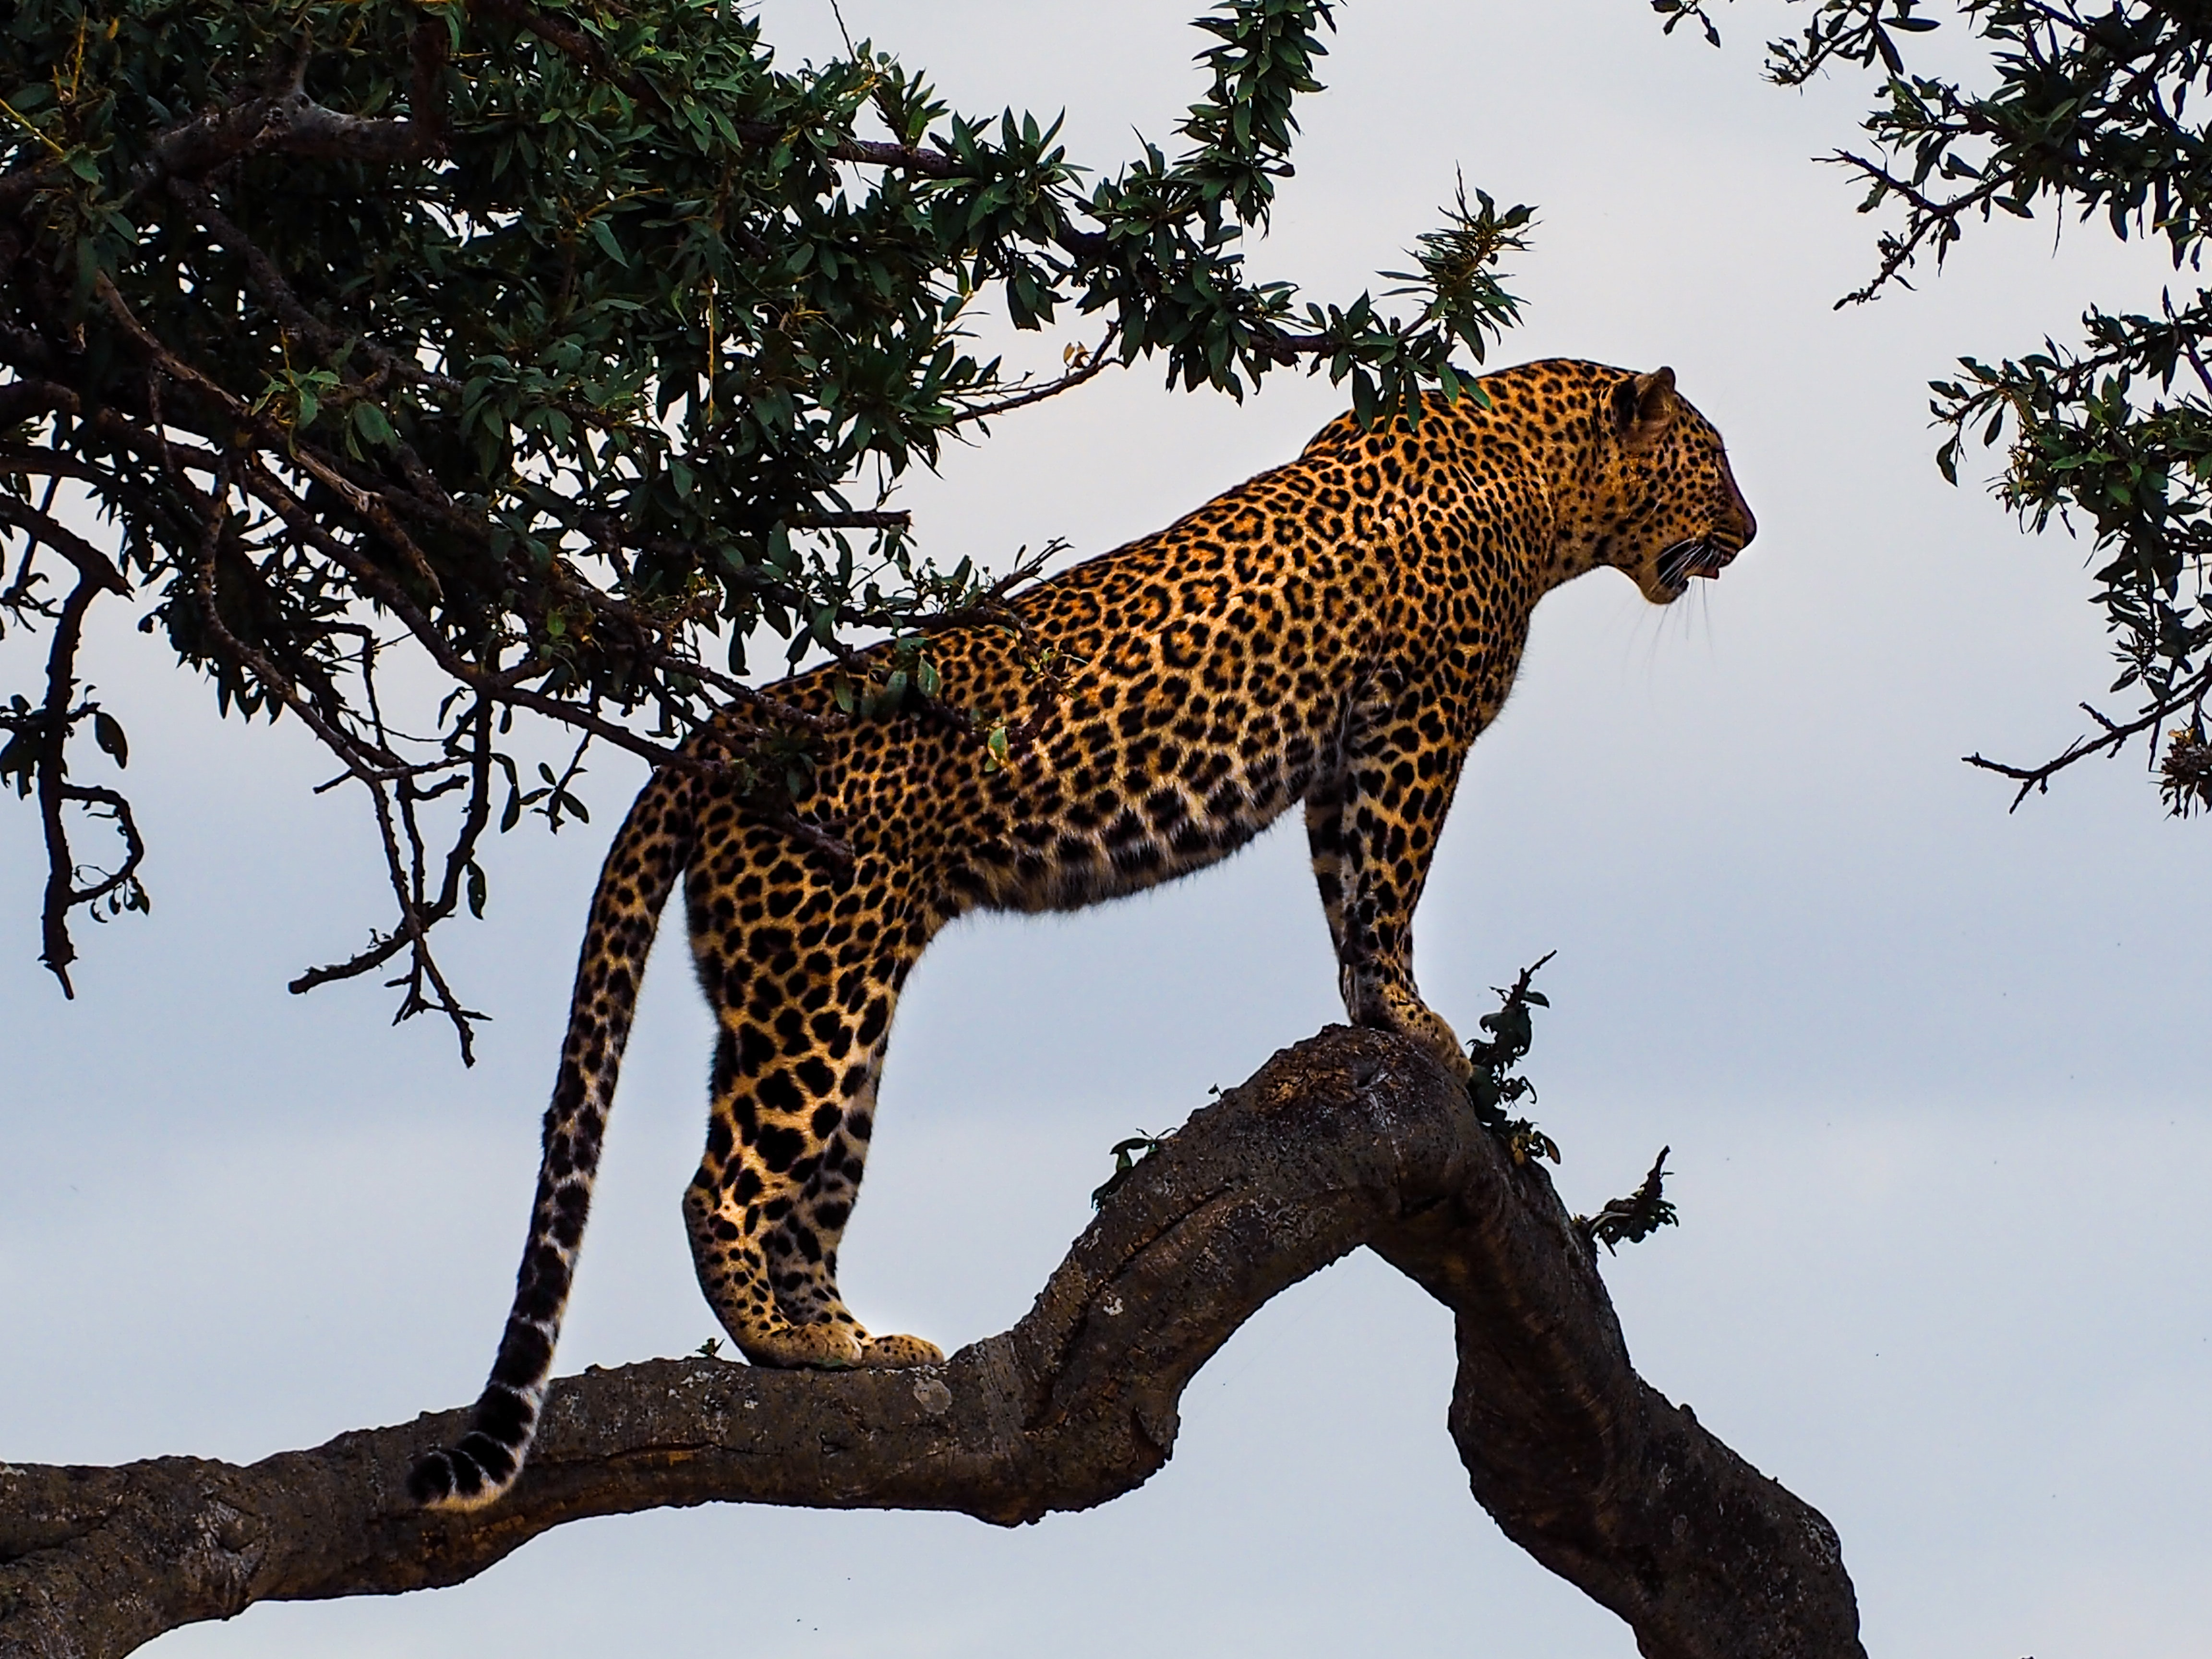 Leopard standing in a tree